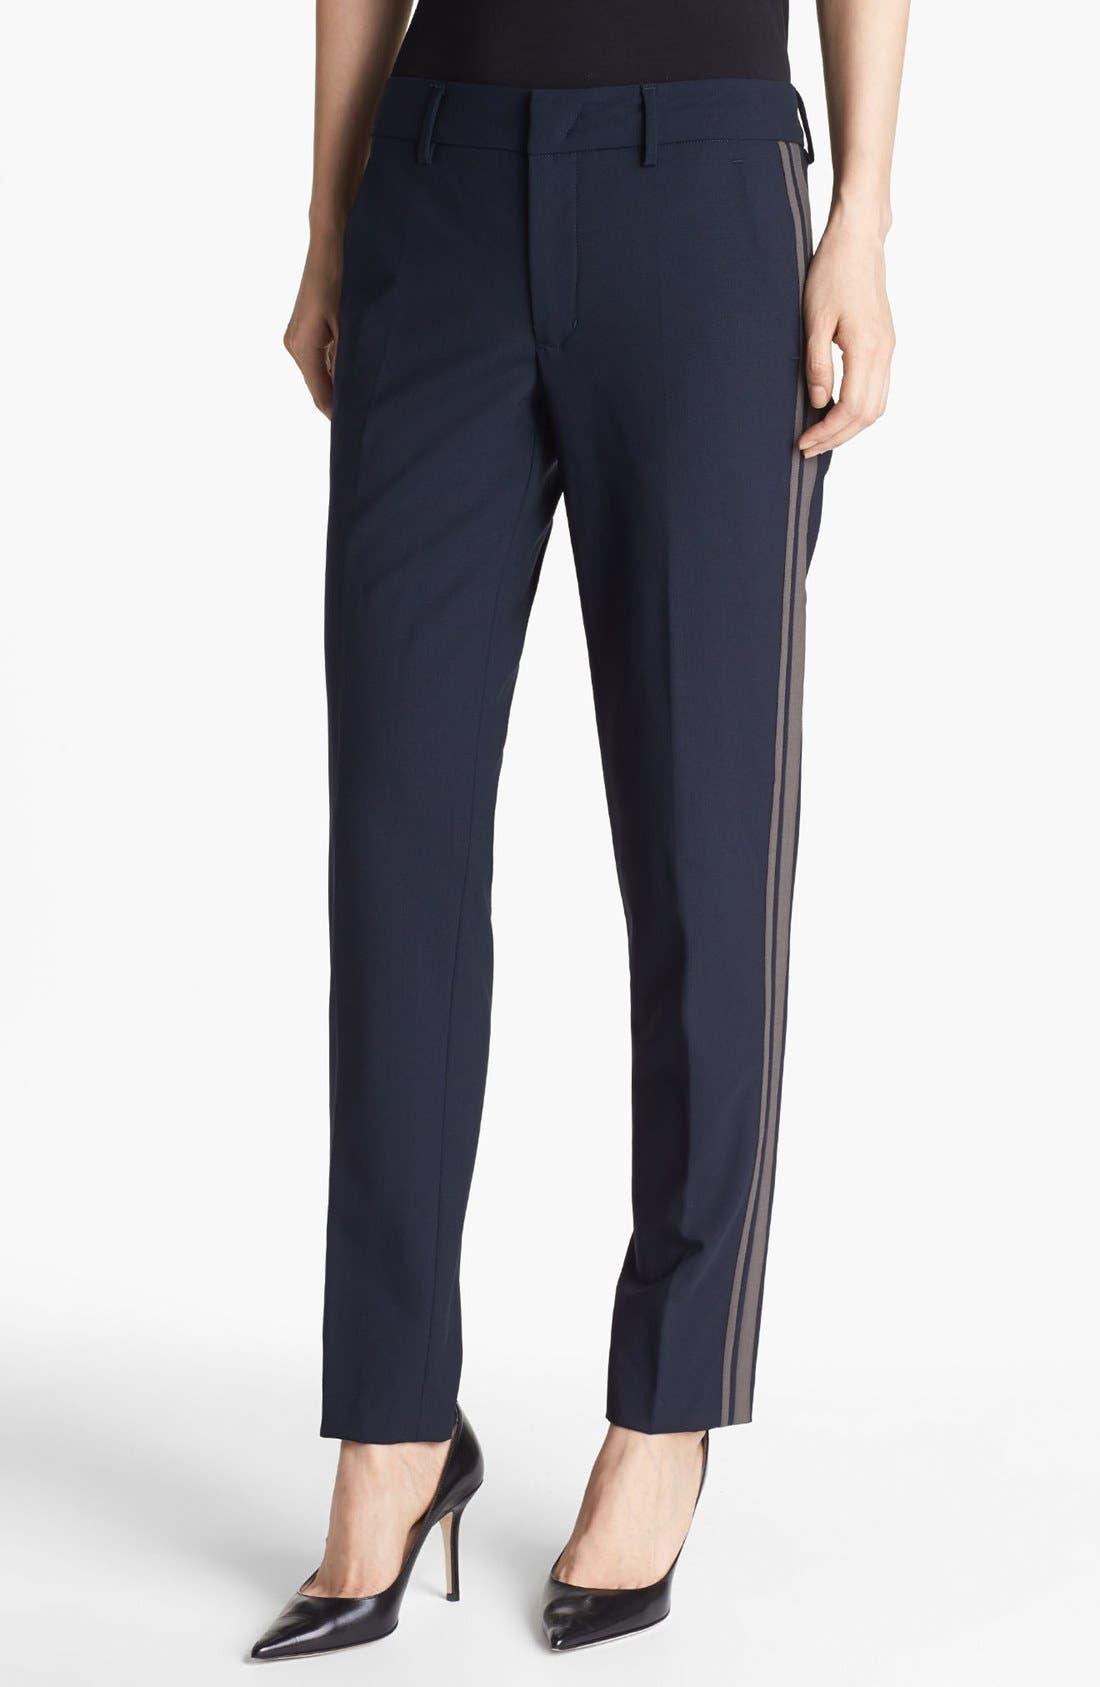 Alternate Image 1 Selected - Vince 'Strapping' Stretch Wool Trousers